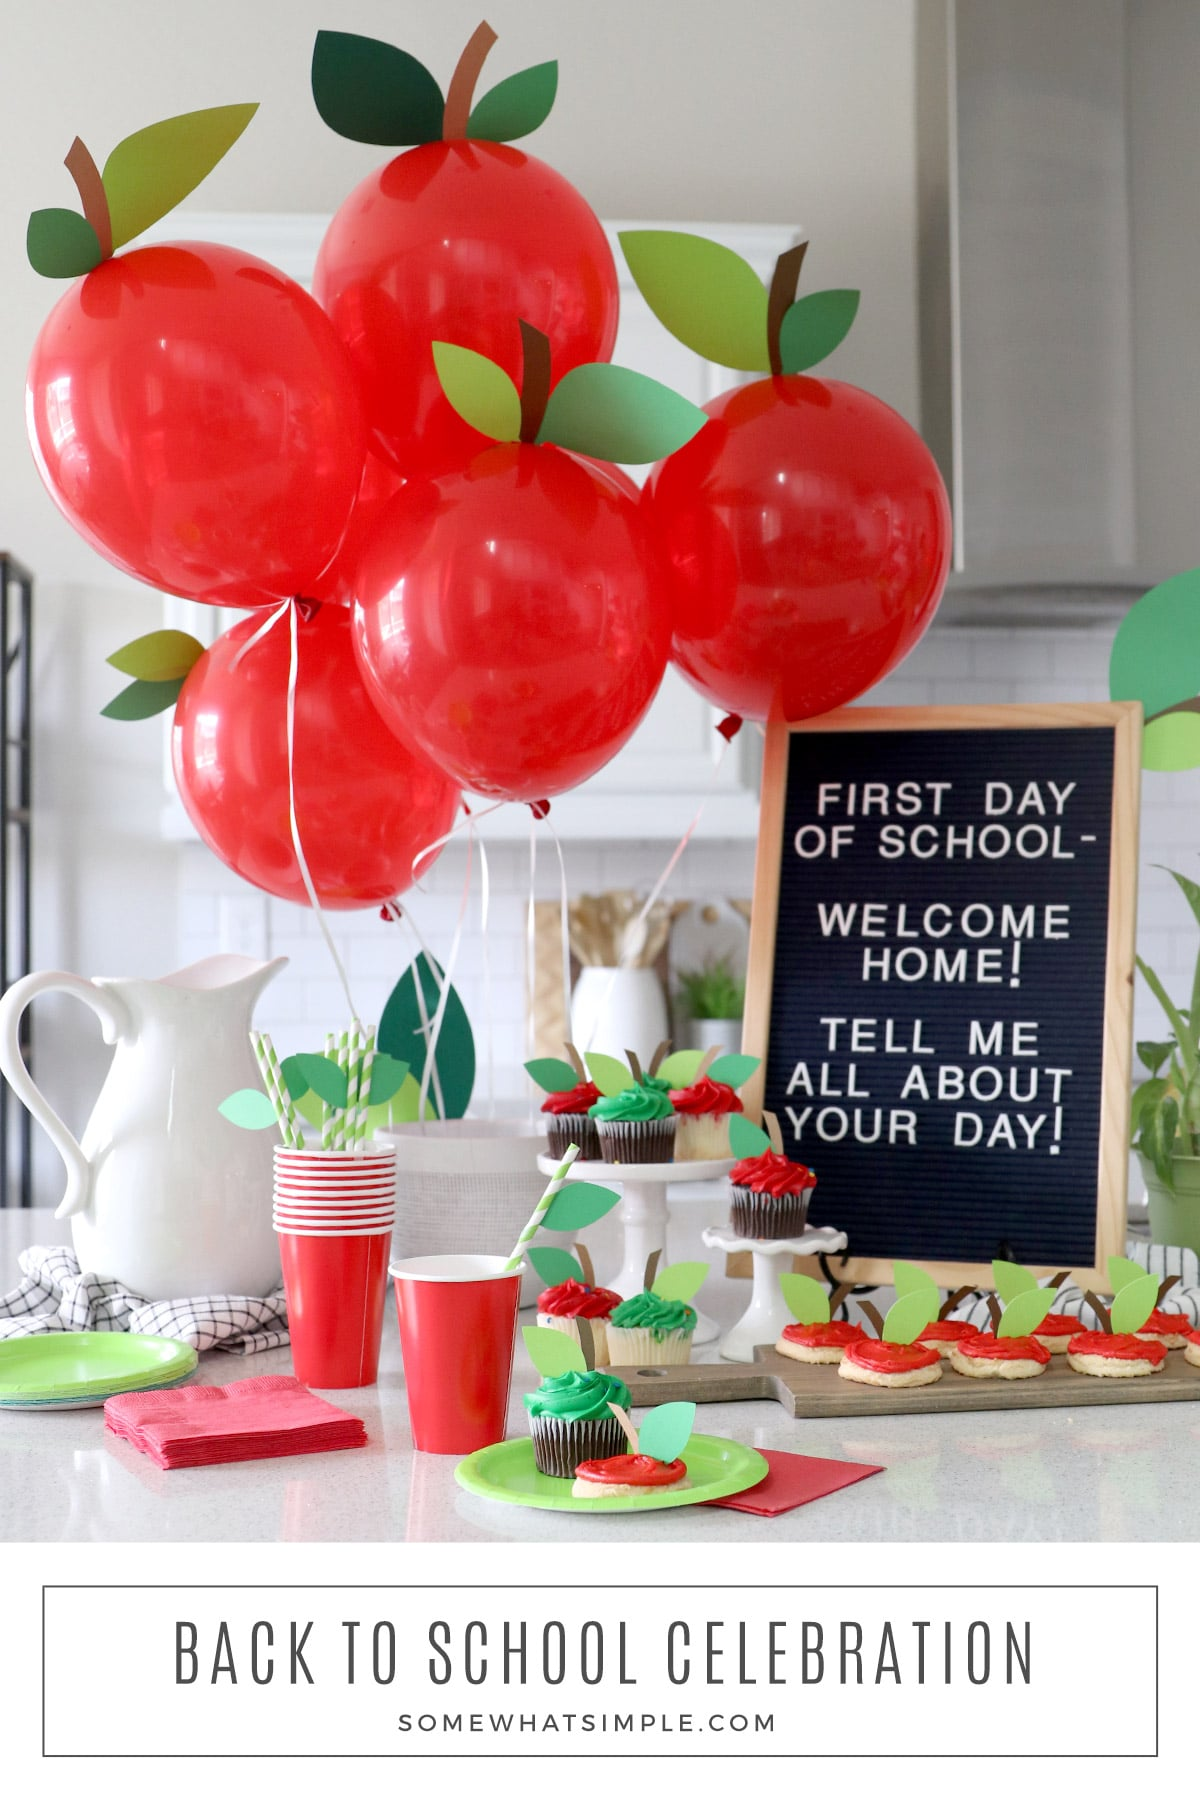 Start the new school year off on the right foot with a fun gathering with friends! Here are 15 Back to School Party Ideas to help spark some creativity!#BackToSchool #Party #Ideas via @somewhatsimple